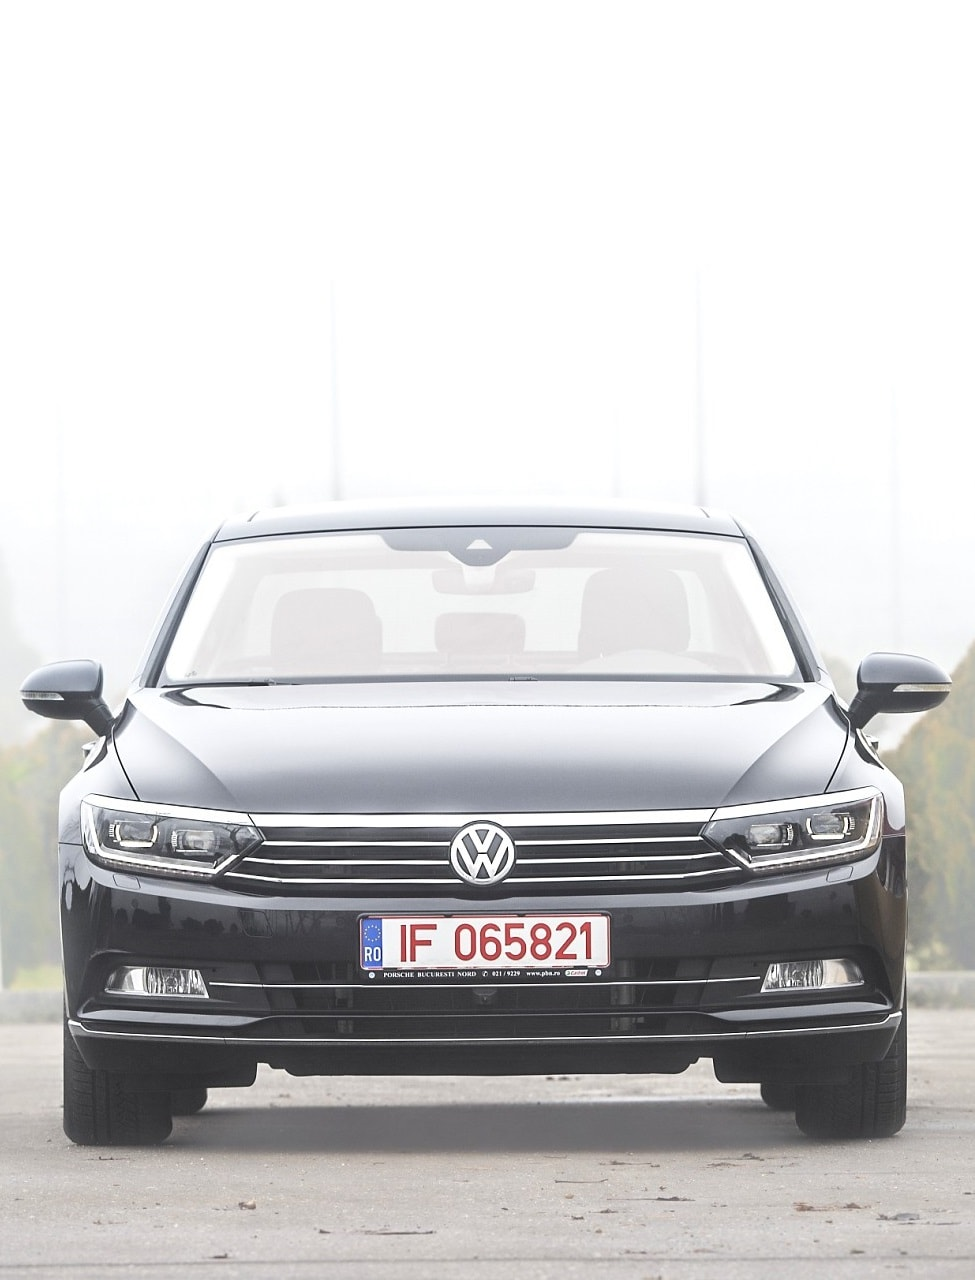 Volkswagen Passat B8 For mobile